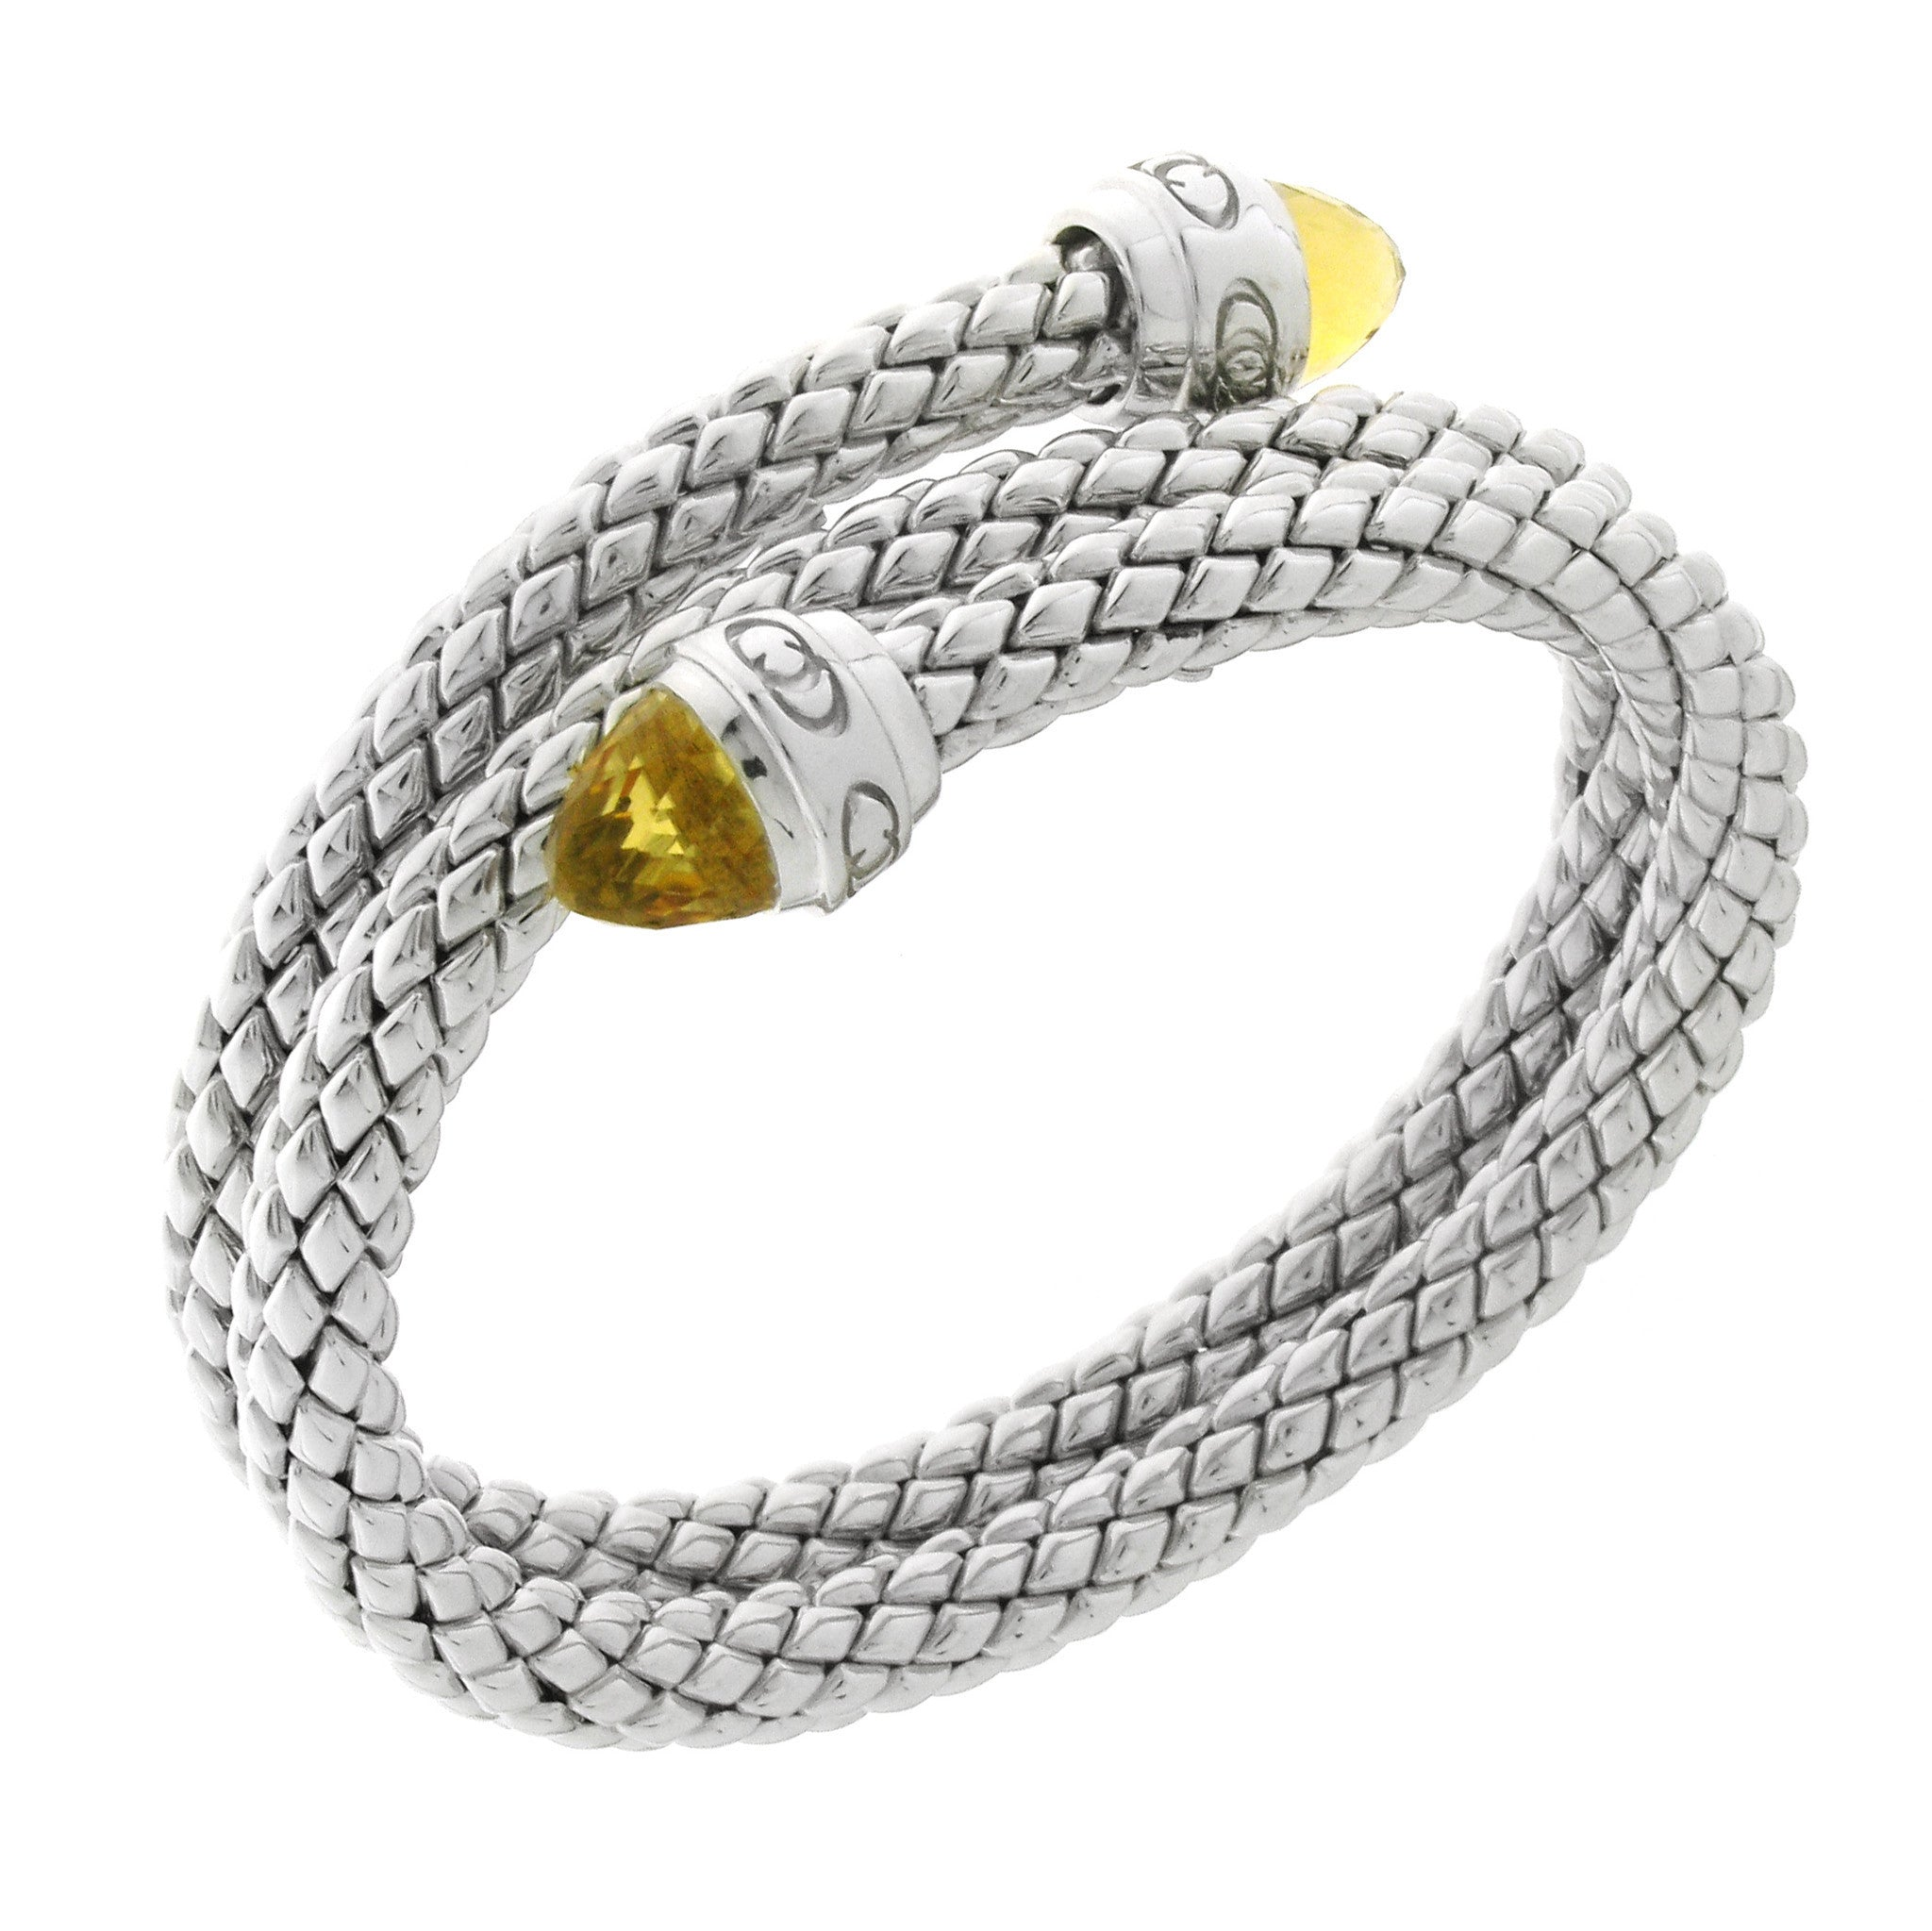 Chimento Stretch Sterling Silver Yellow Quartz Bracelet D